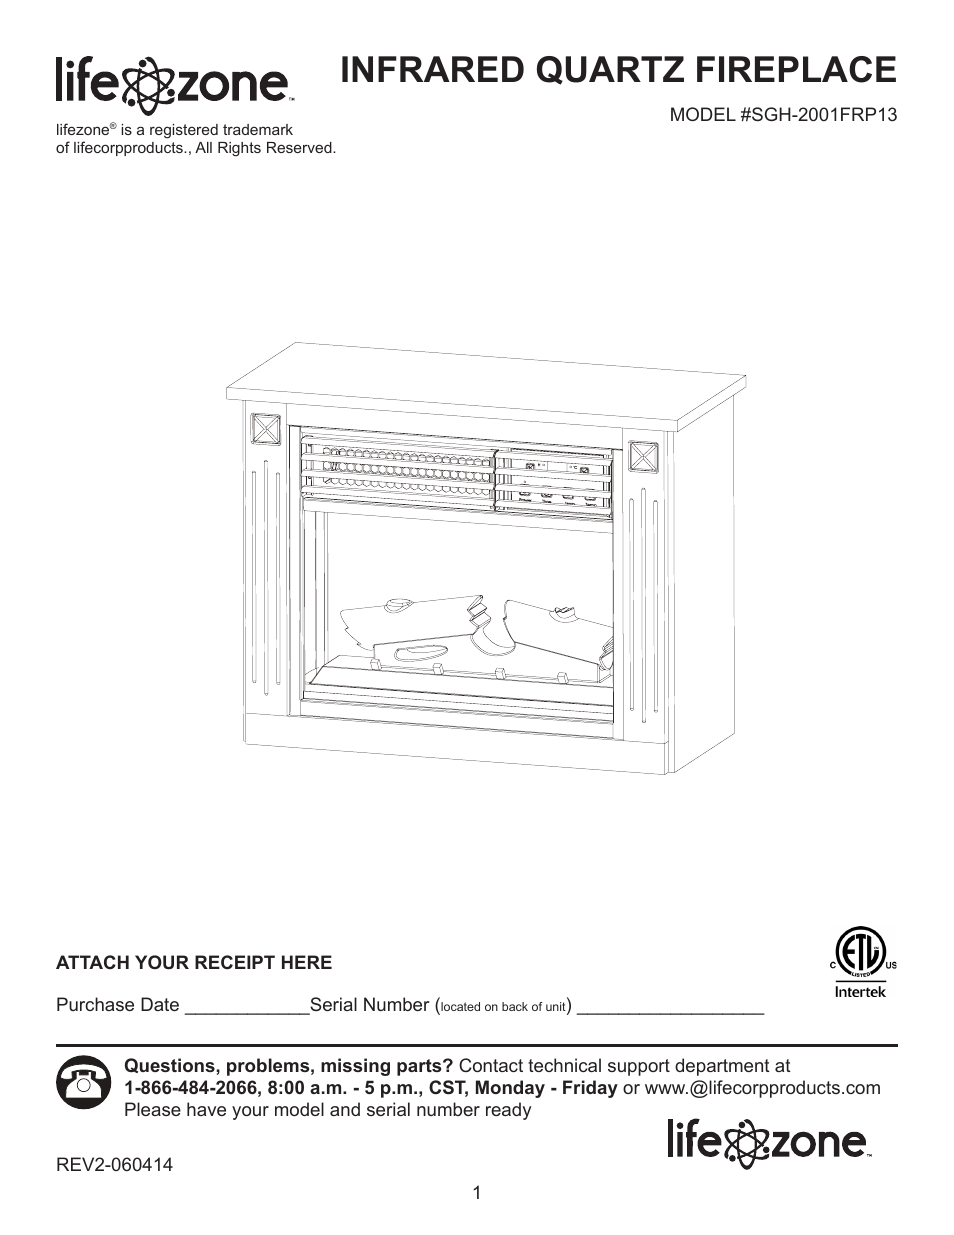 lifesmart sgh 2001frp13 user manual 15 pages Dr Infrared Heater Diagram